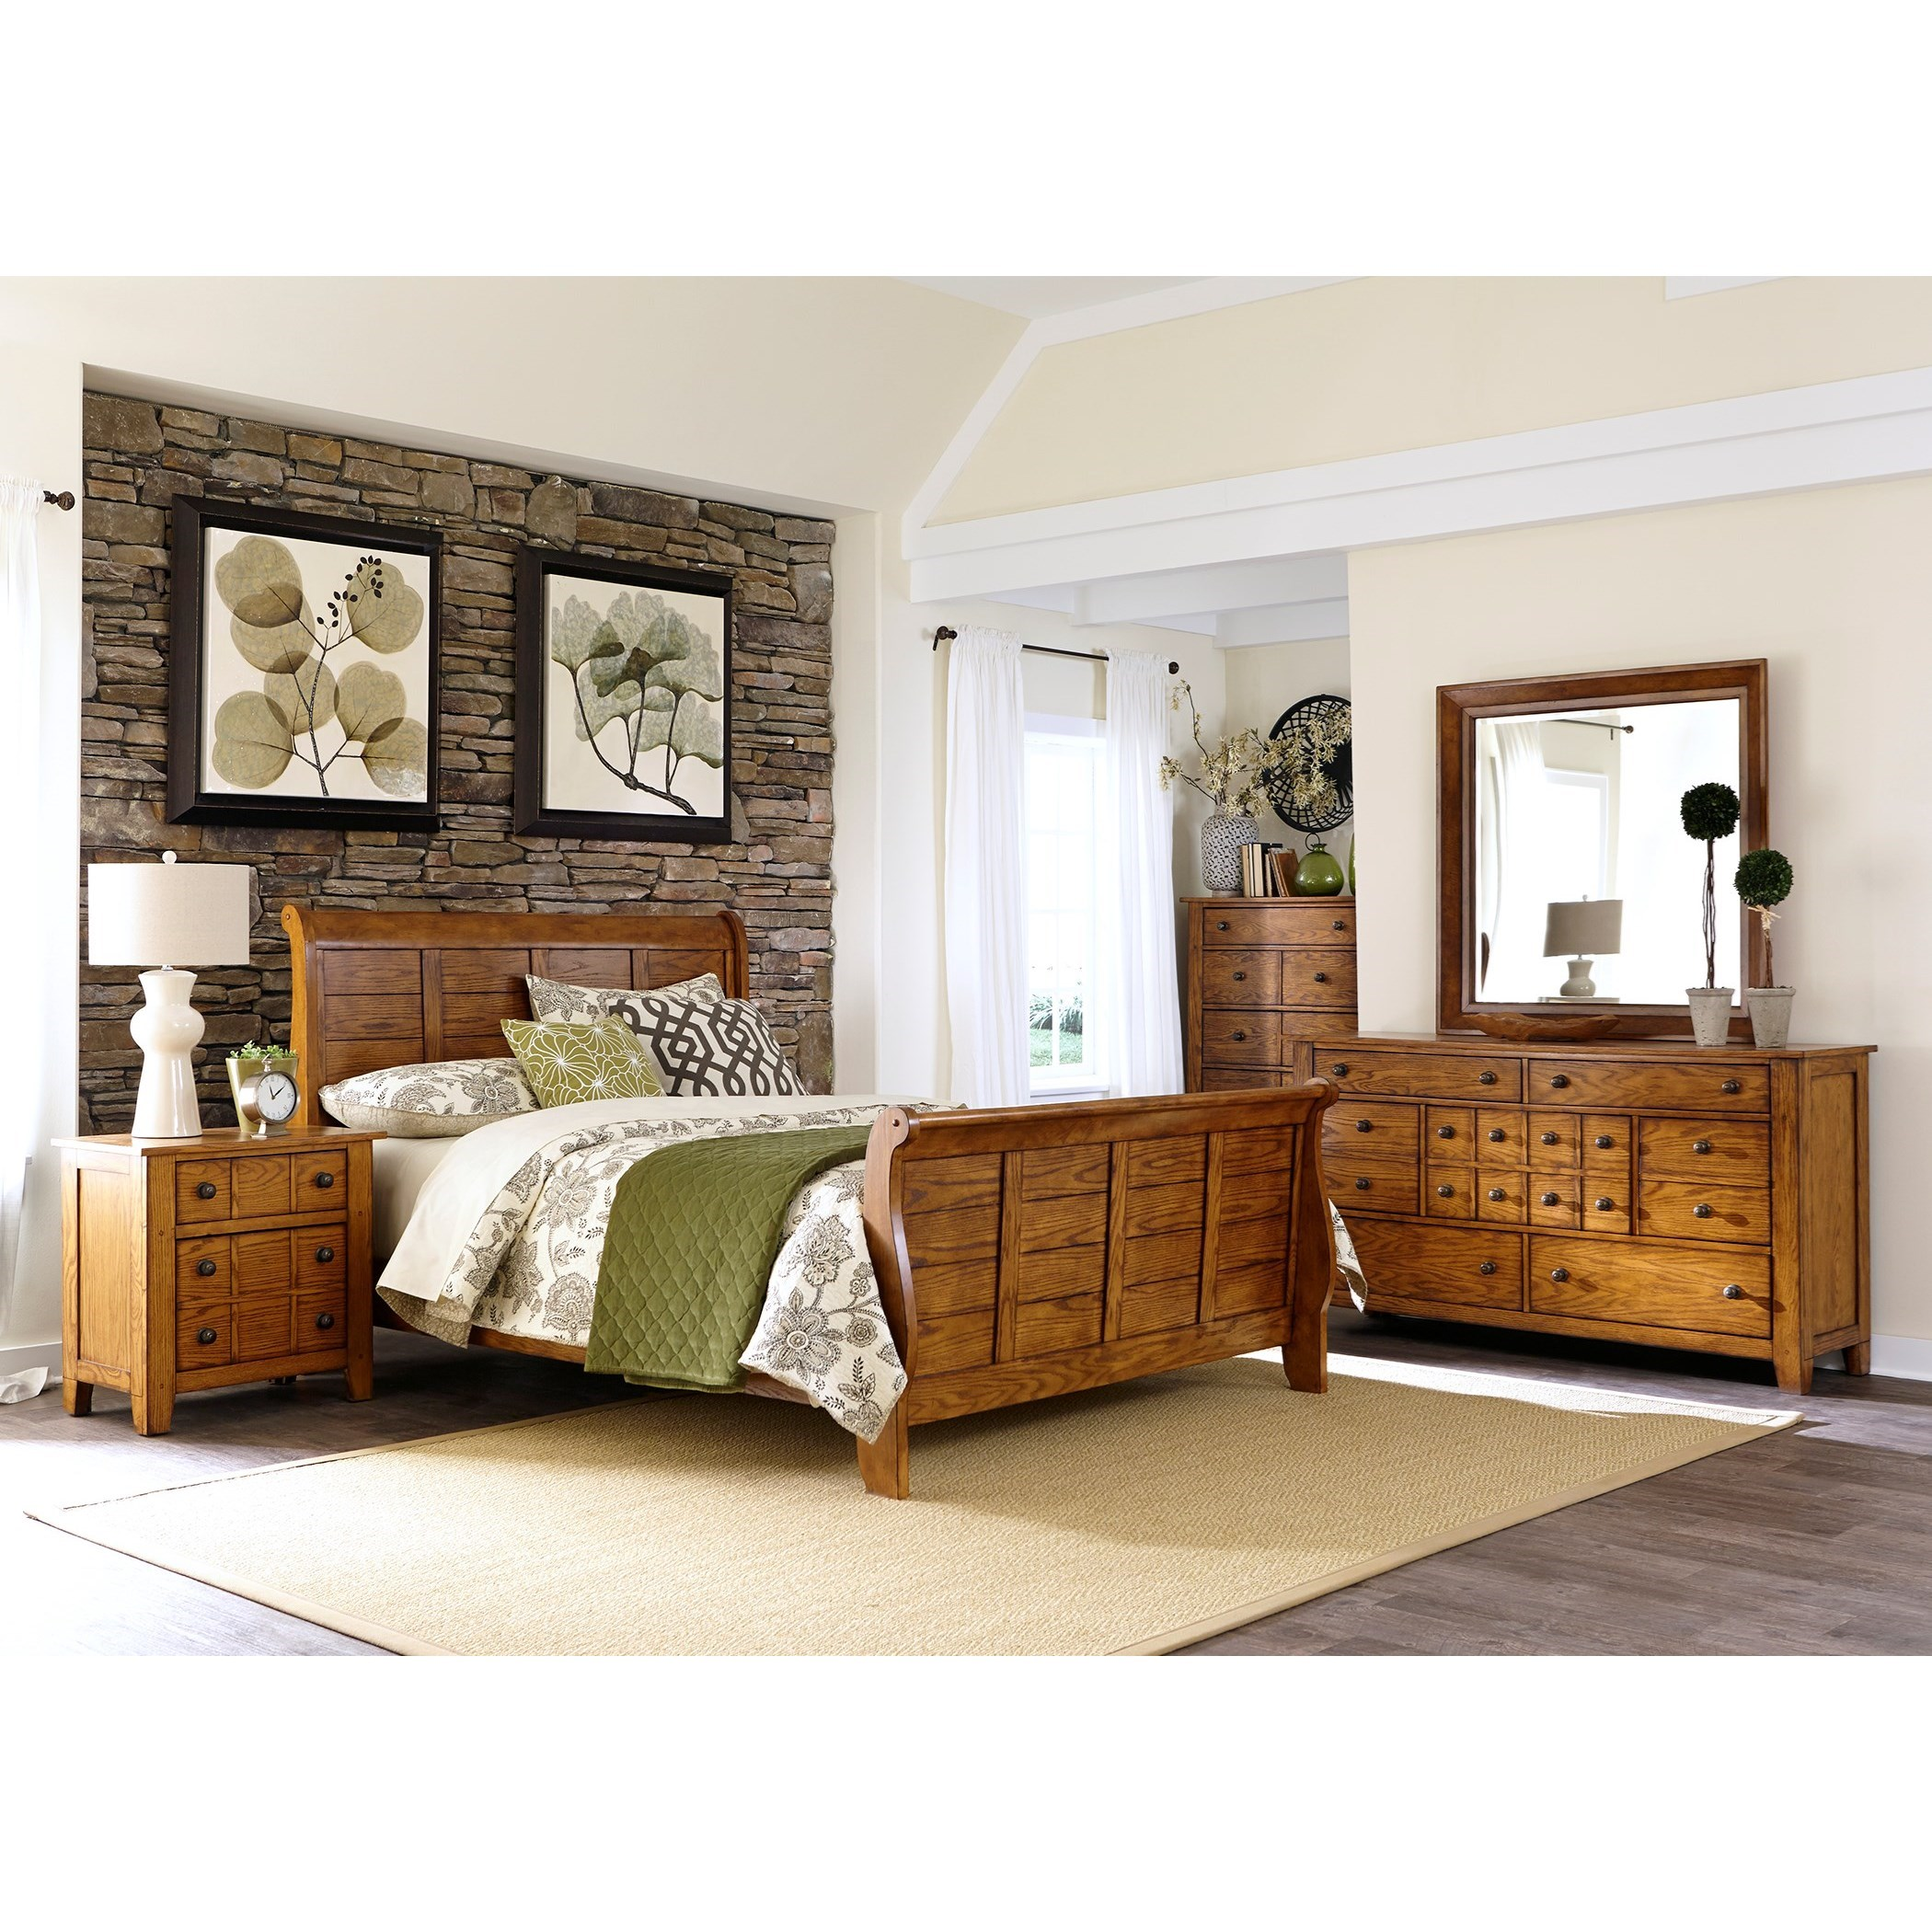 Grandpa's Cabin King Bedroom Group by Liberty Furniture at Northeast Factory Direct